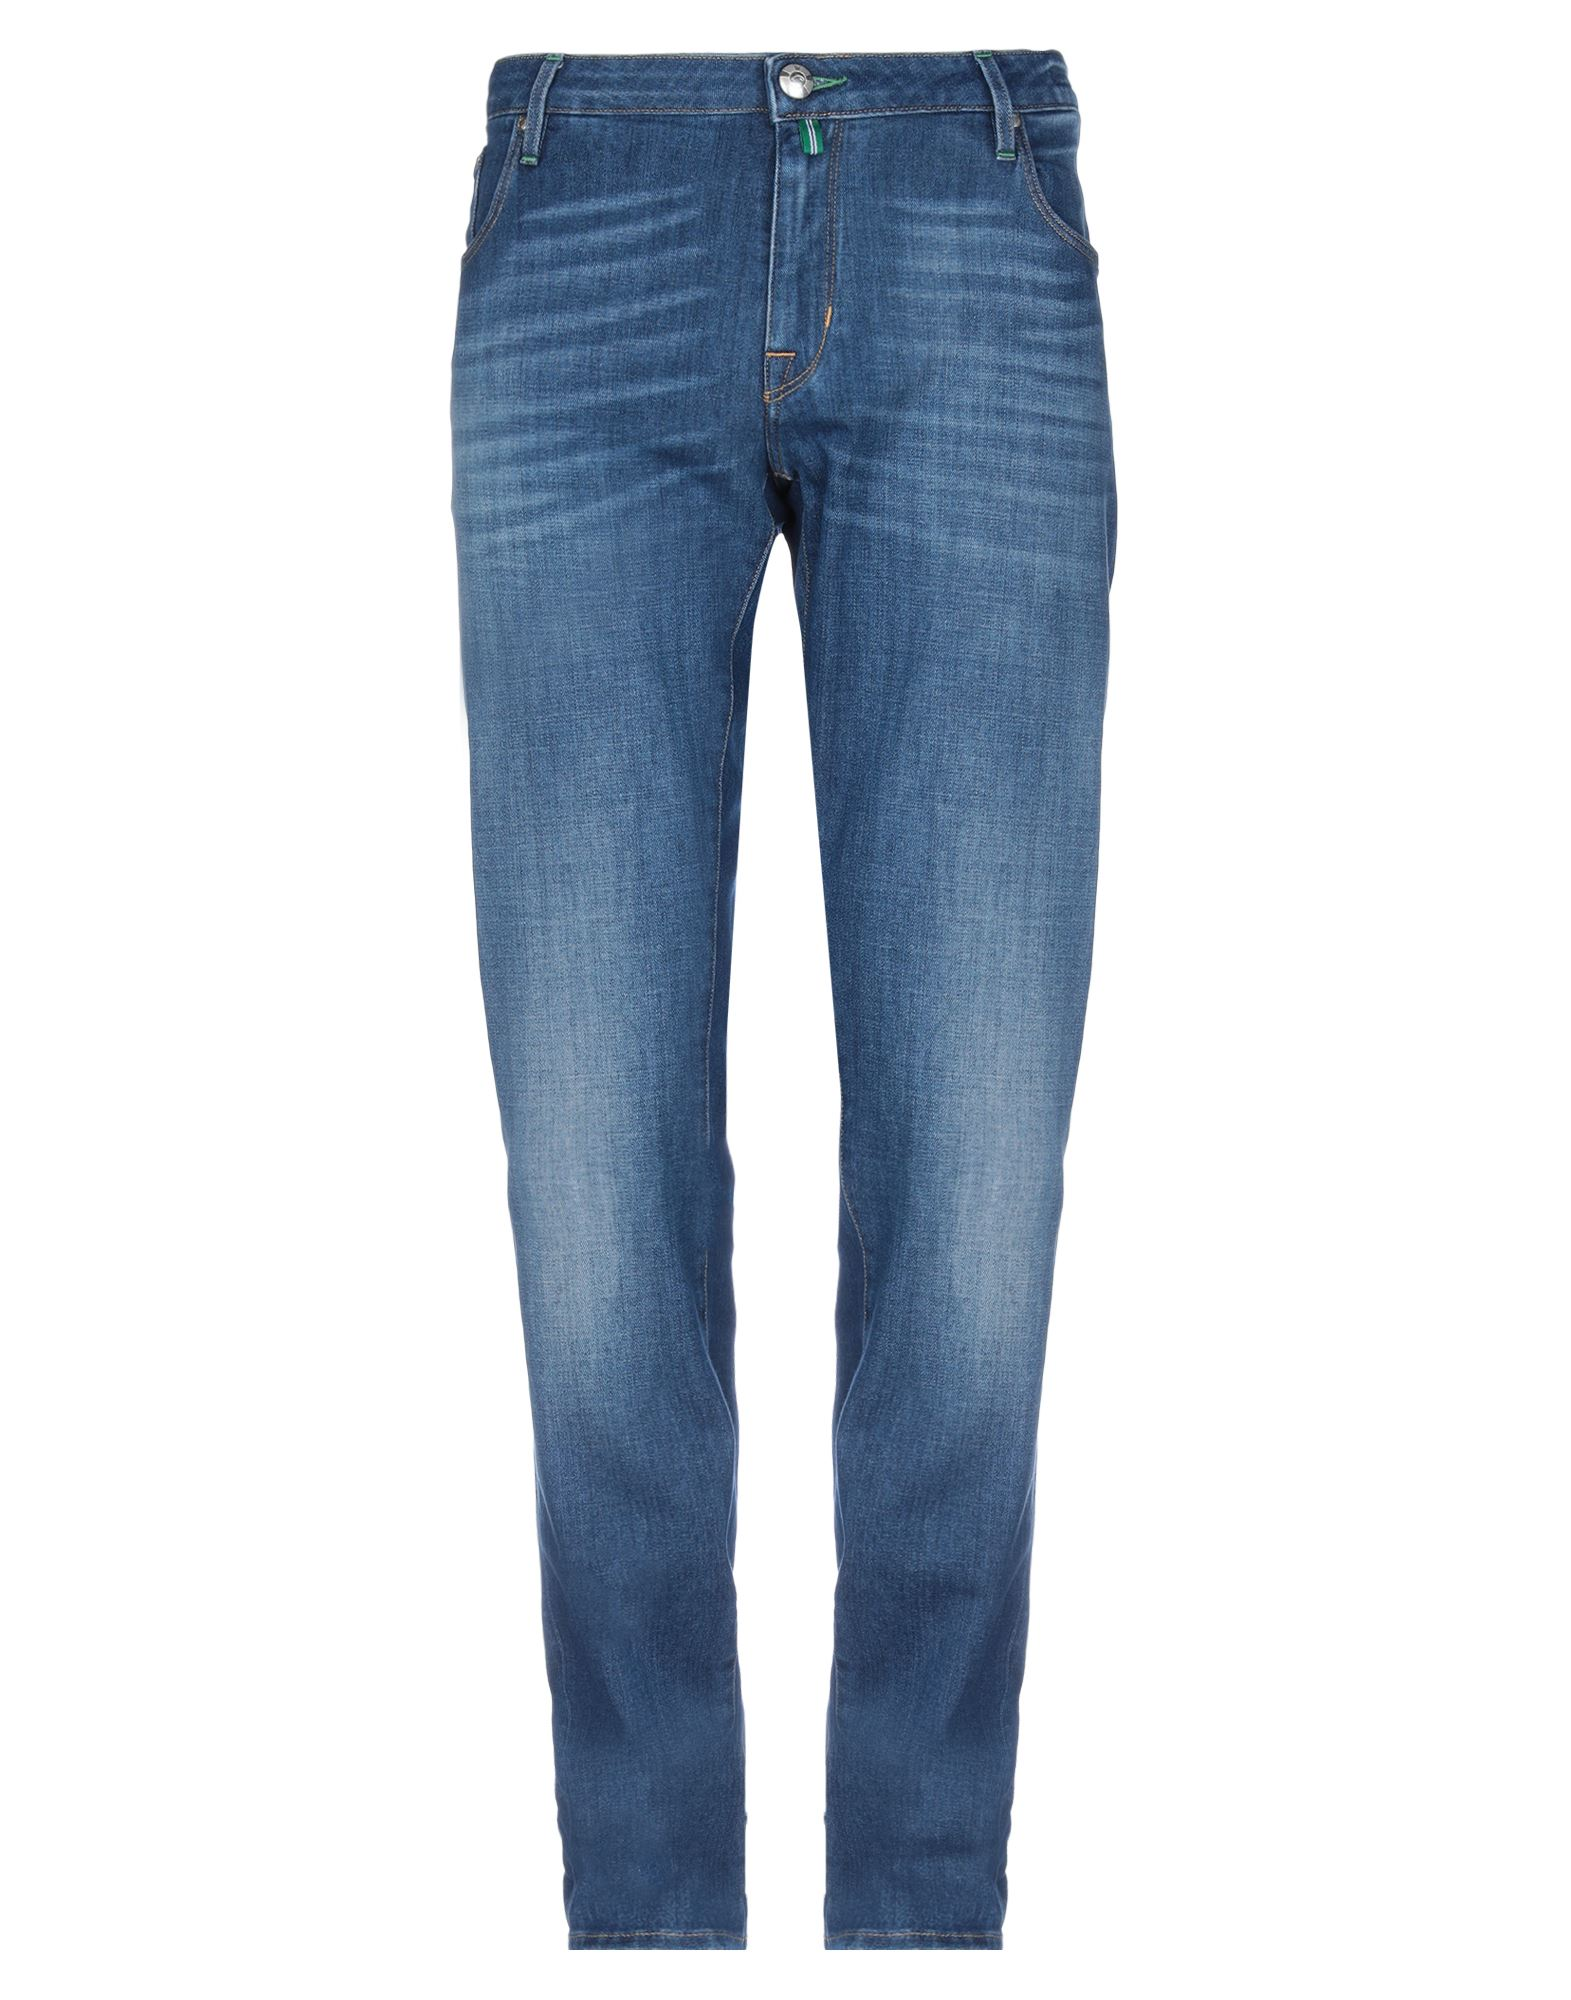 JACOB COHЁN Denim pants - Item 42828903